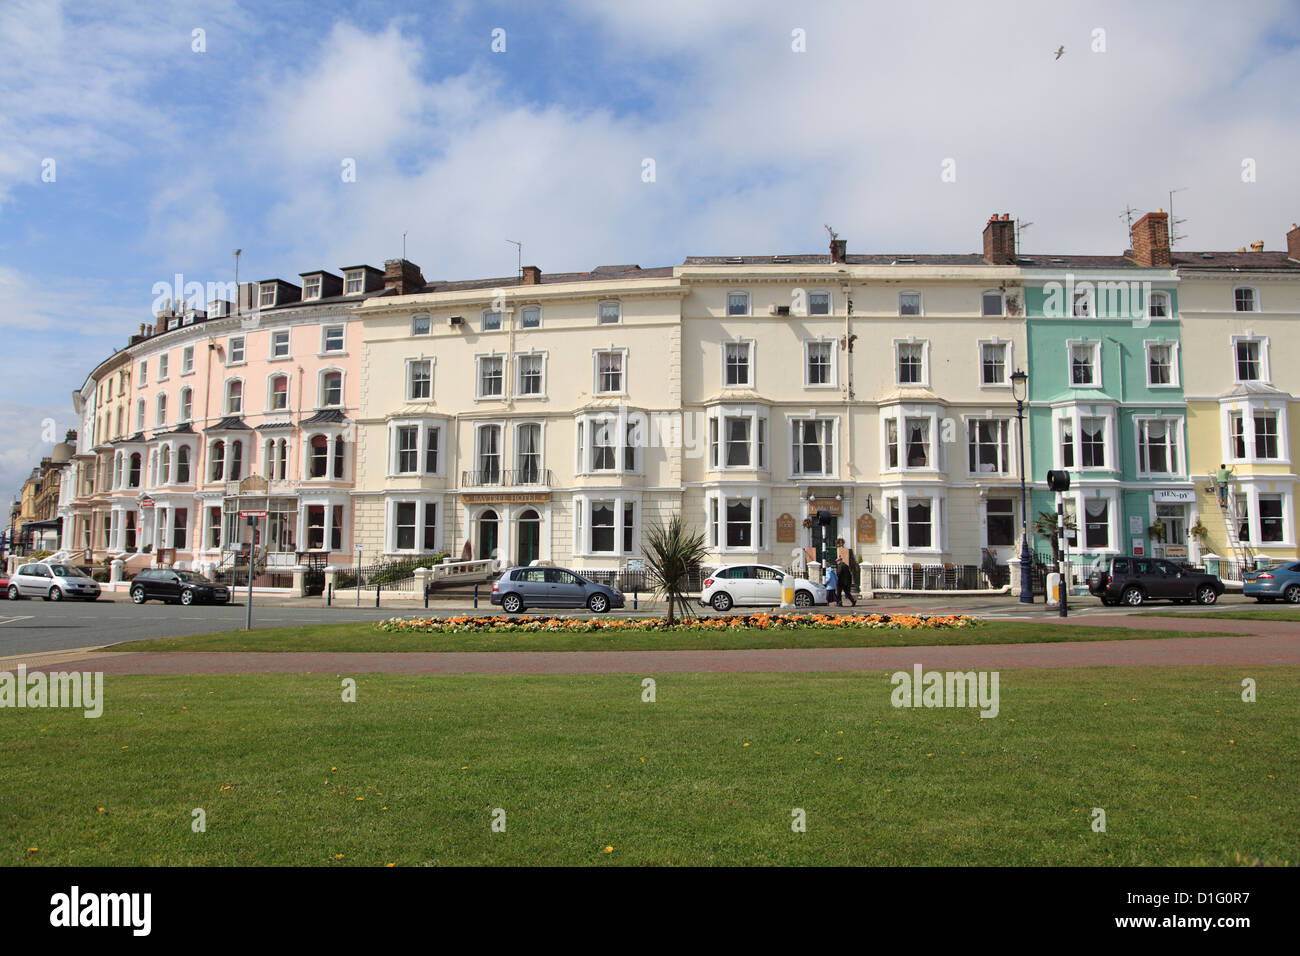 Colourful architecture, Llandudno, Conwy County, North Wales, Wales, United Kingdom, europe - Stock Image